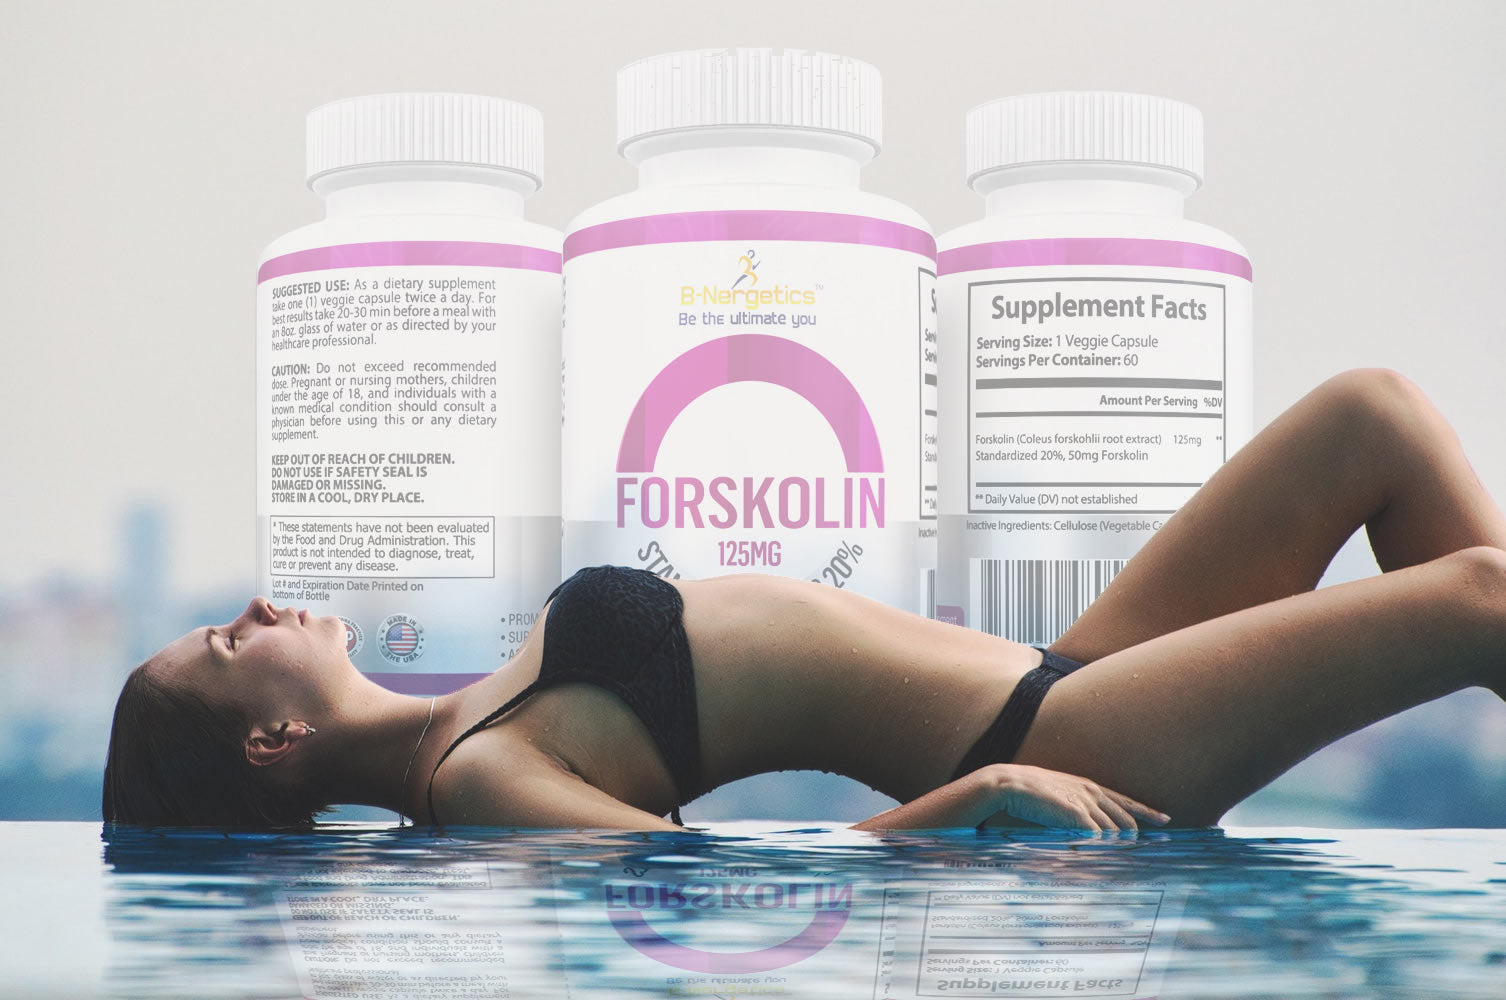 forskolin 125mg